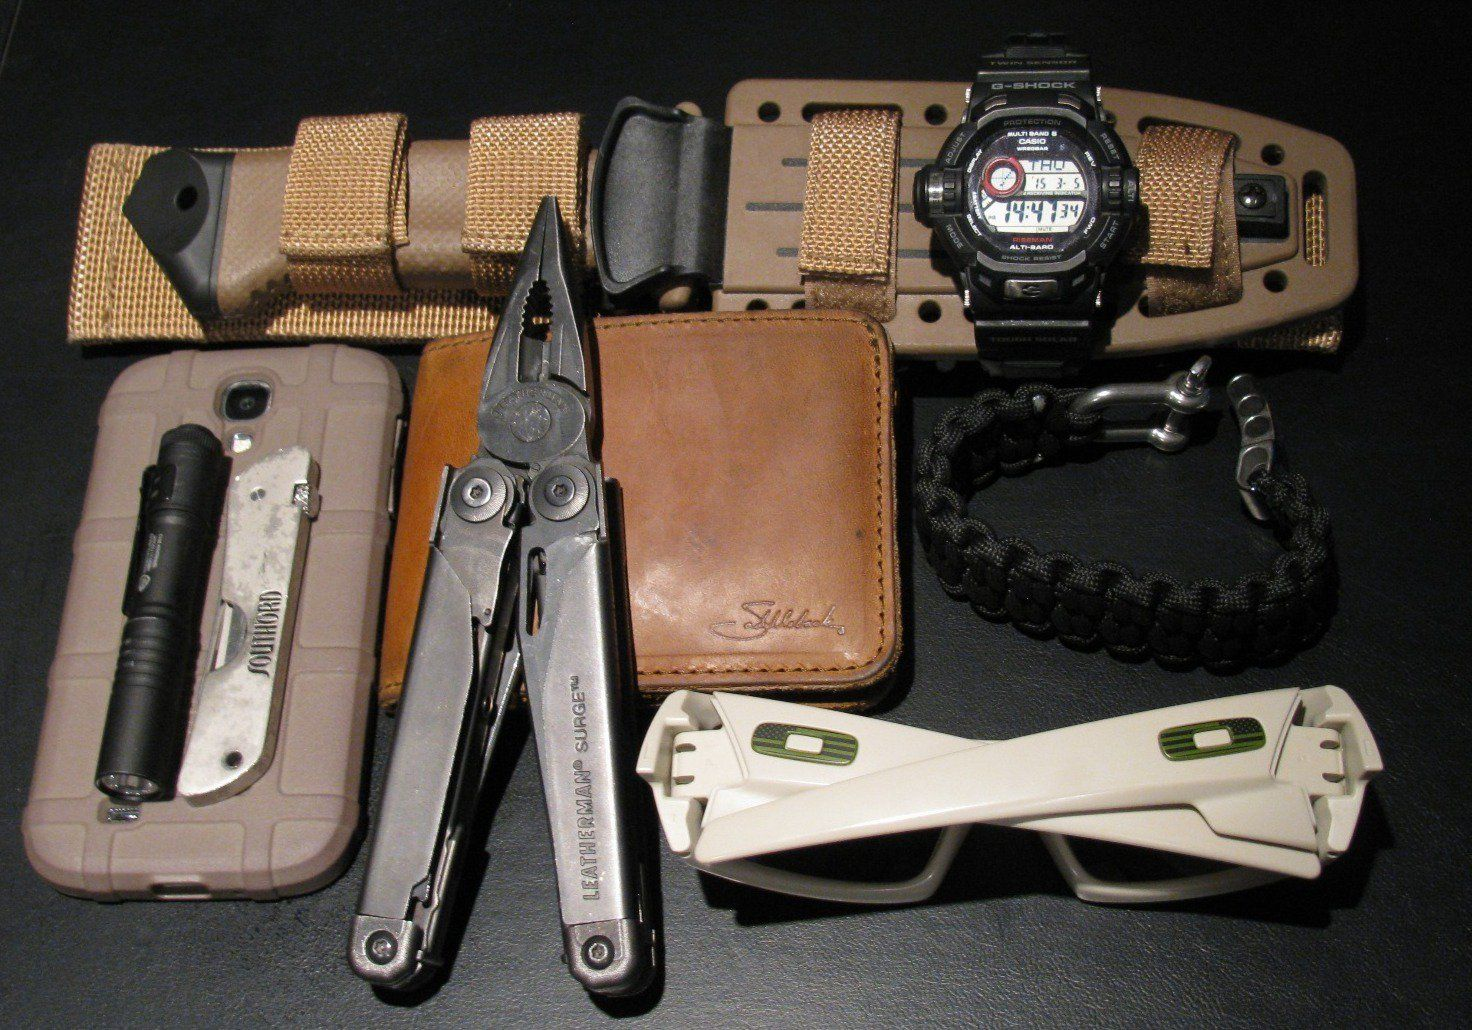 Camping, Hiking, Hunting, this carry covers it all for me. sometimes I include a lighter.